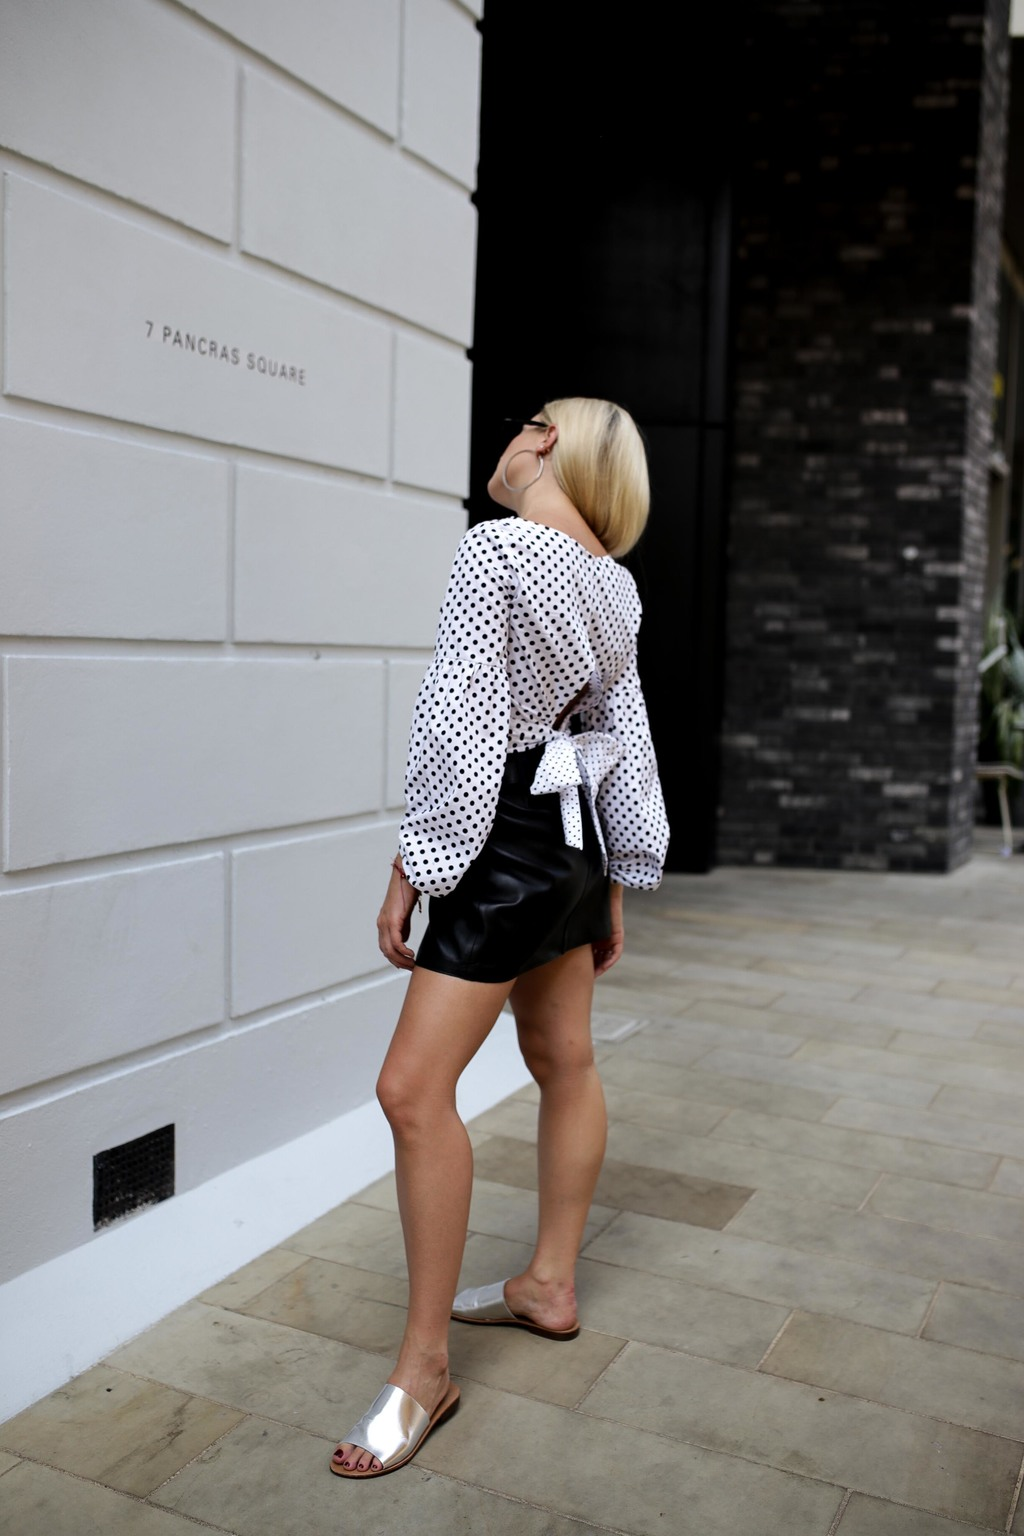 OUTFIT DIARIES: LEATHER SKIRTS & POLKA DOTS